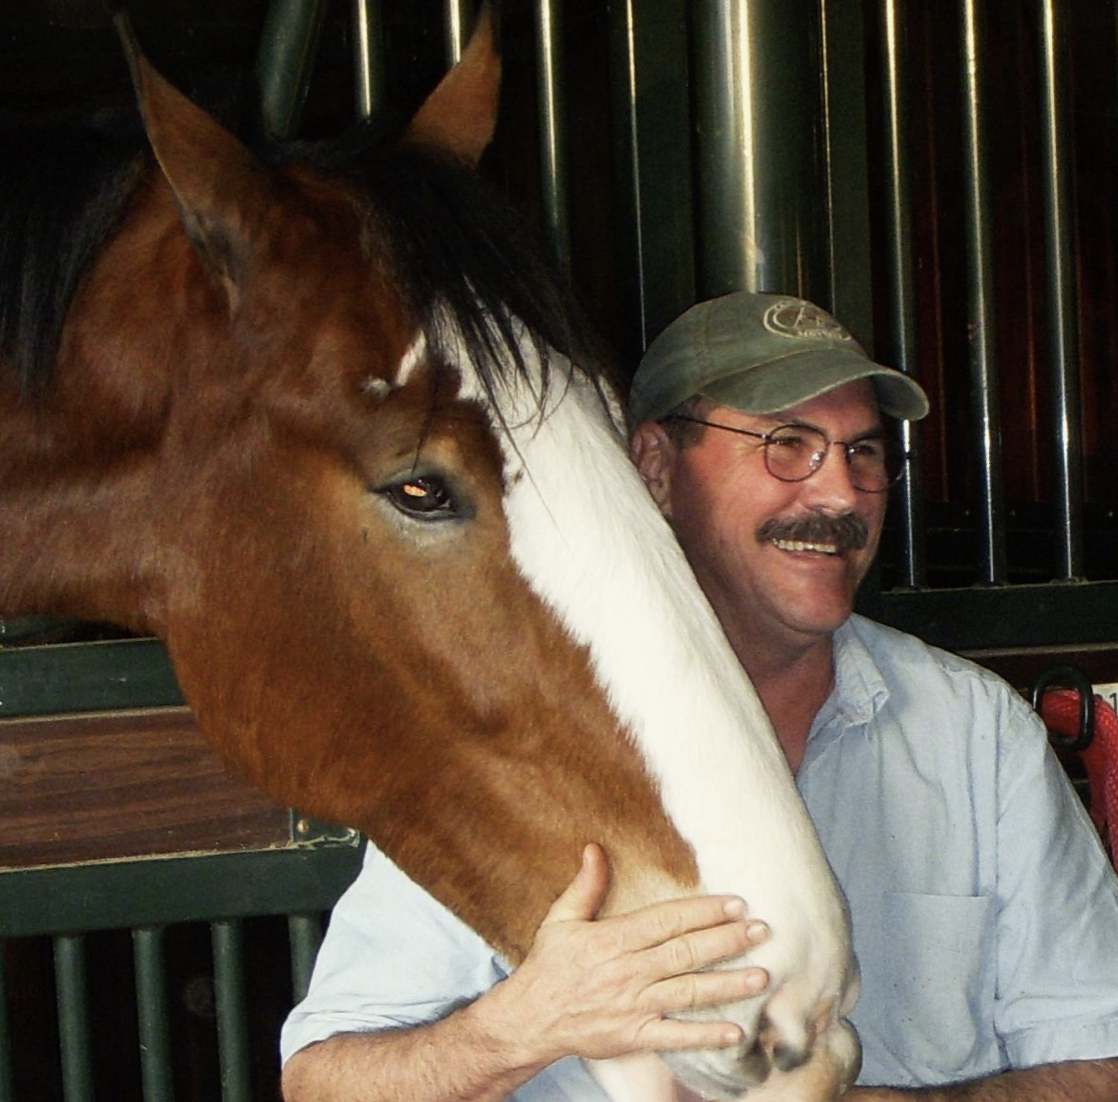 Jim Masterson with Bud. Photo courtesy of The Masterson Method.